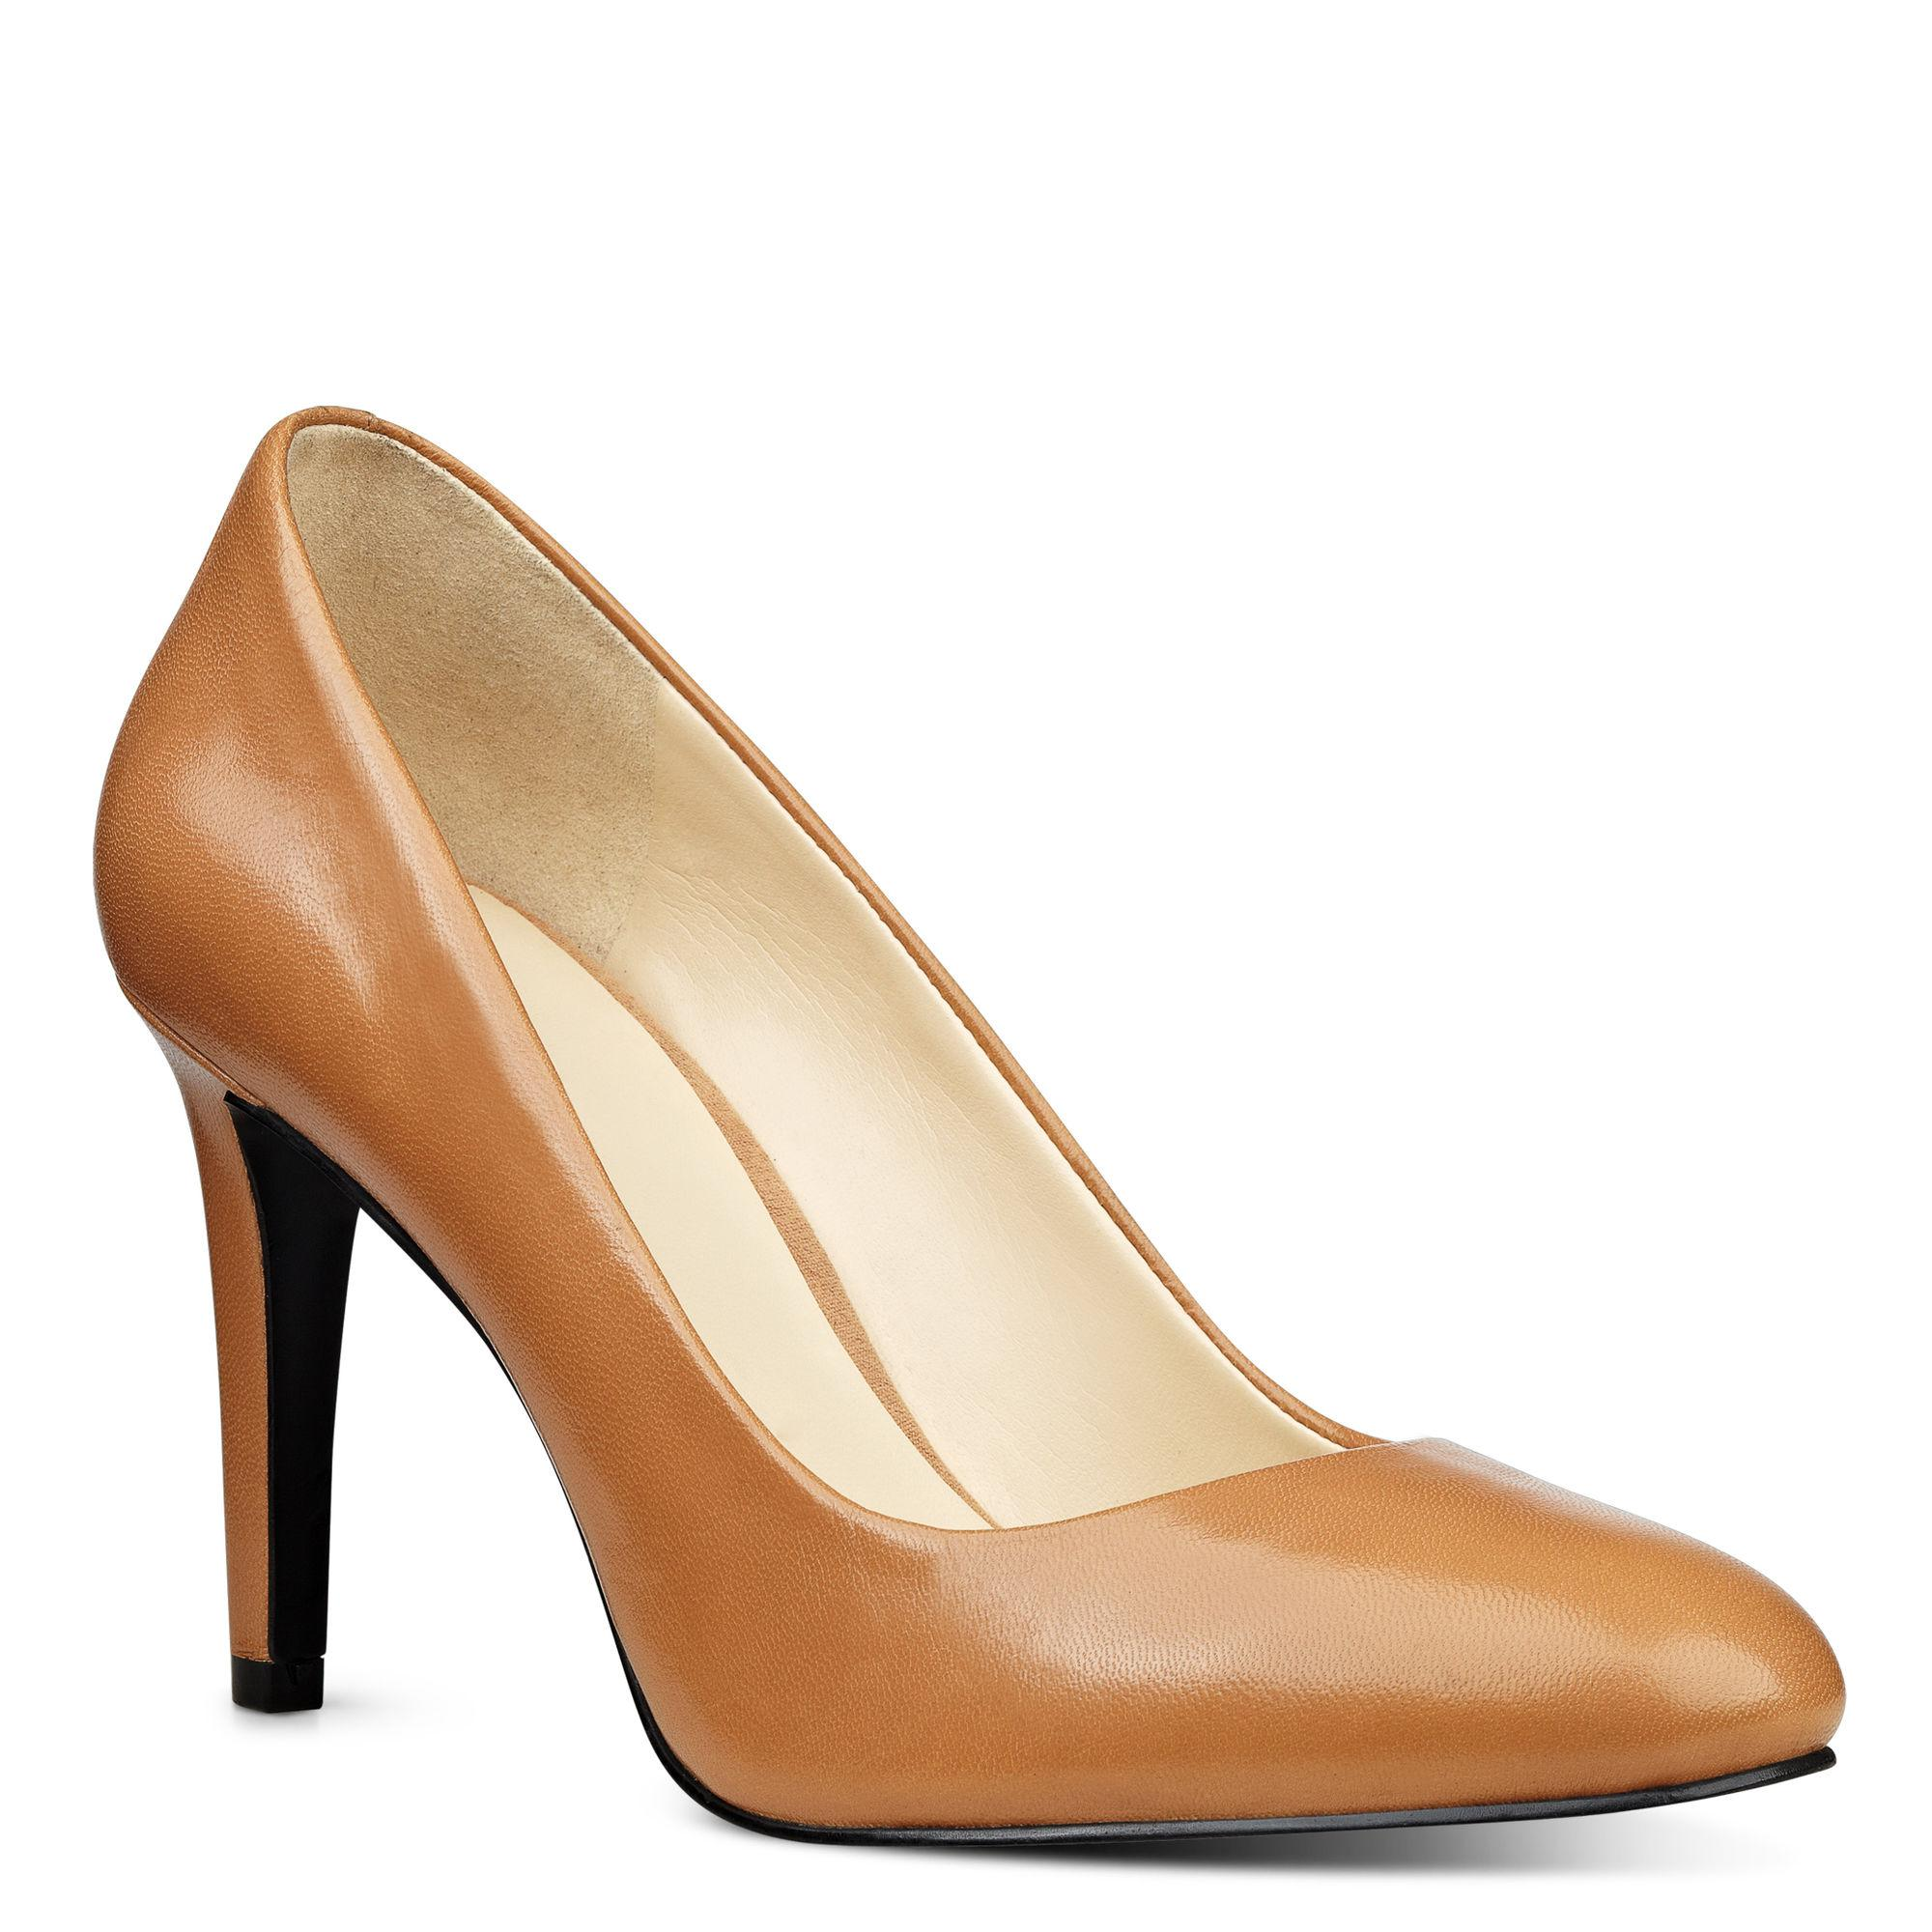 Nine West. Women's Handjive Round Toe Pumps